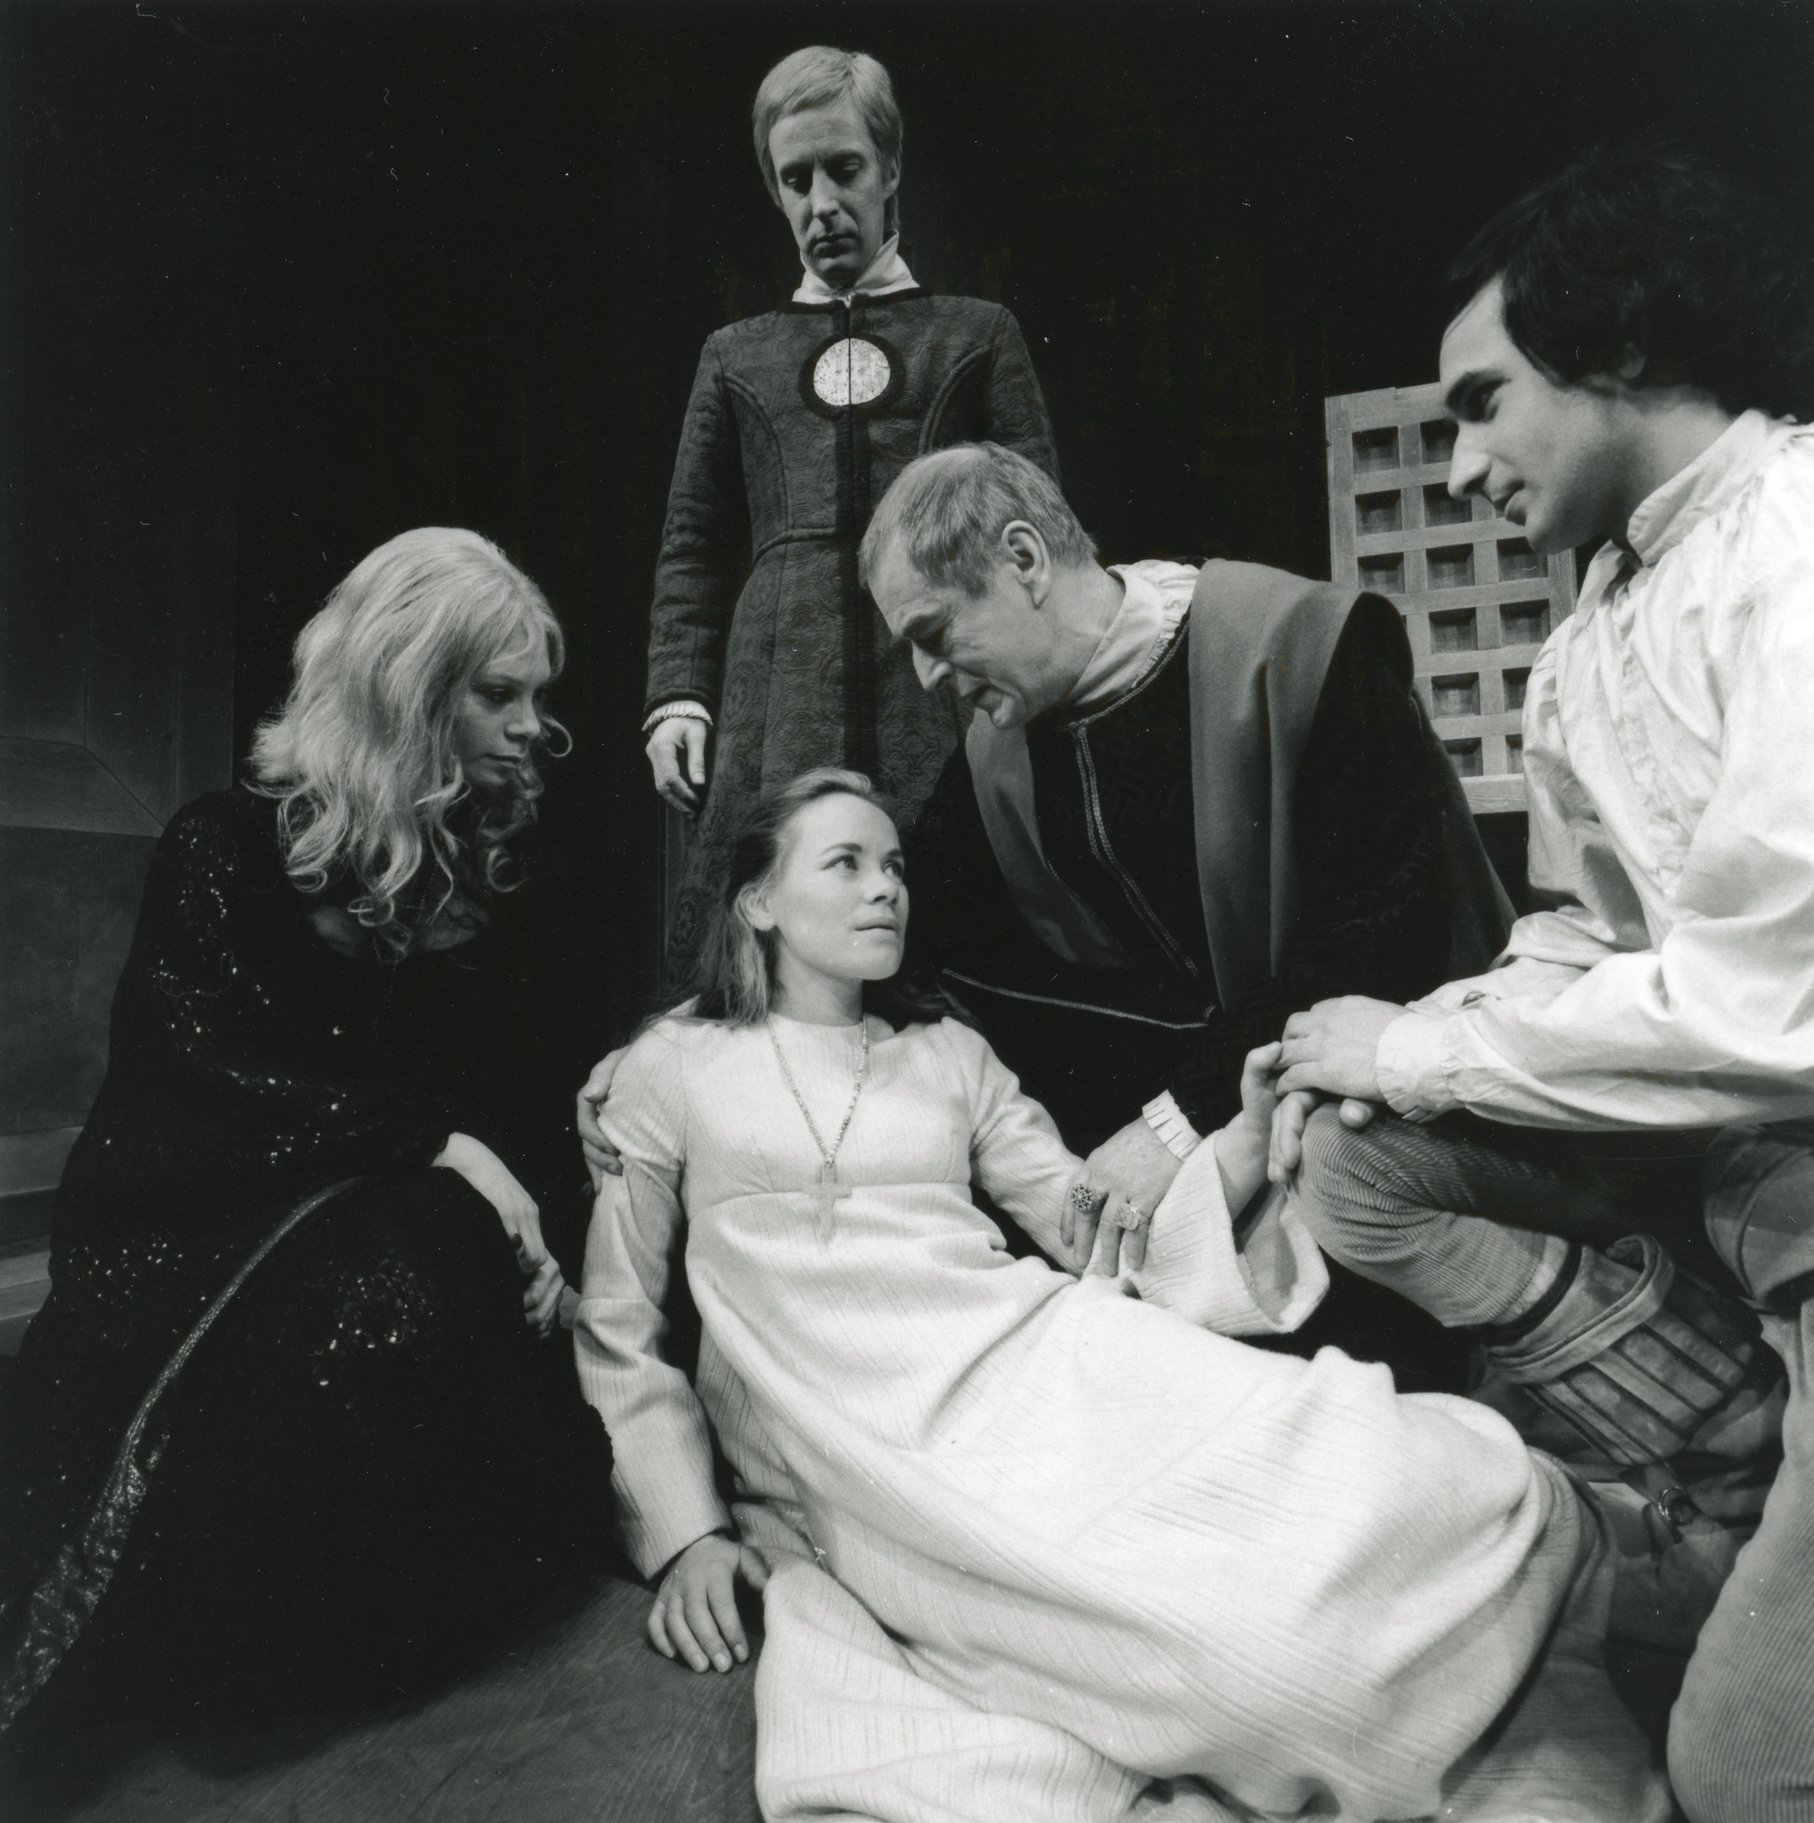 A woman in white lies on the floor surrounded by people.